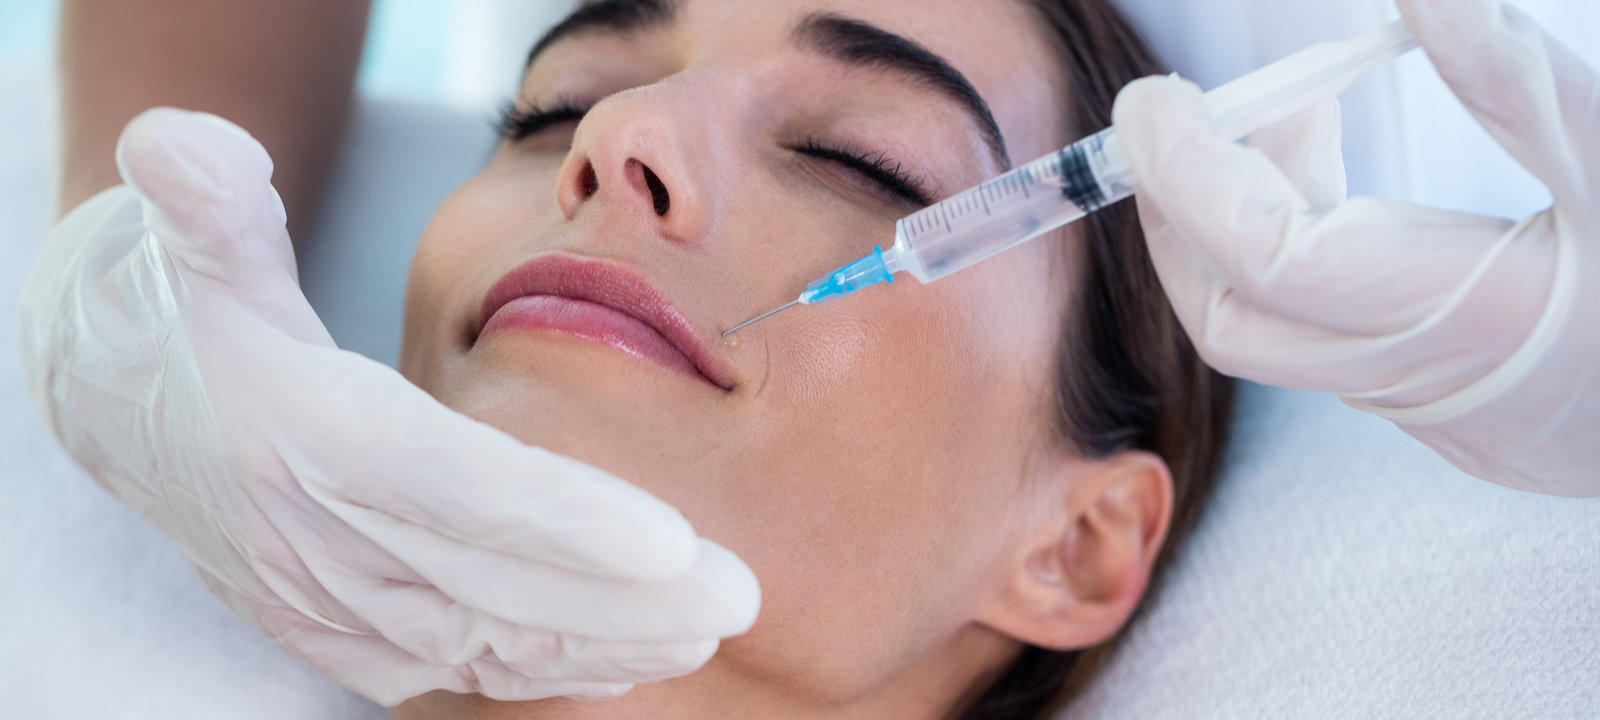 Woman-receiving-botox-injection